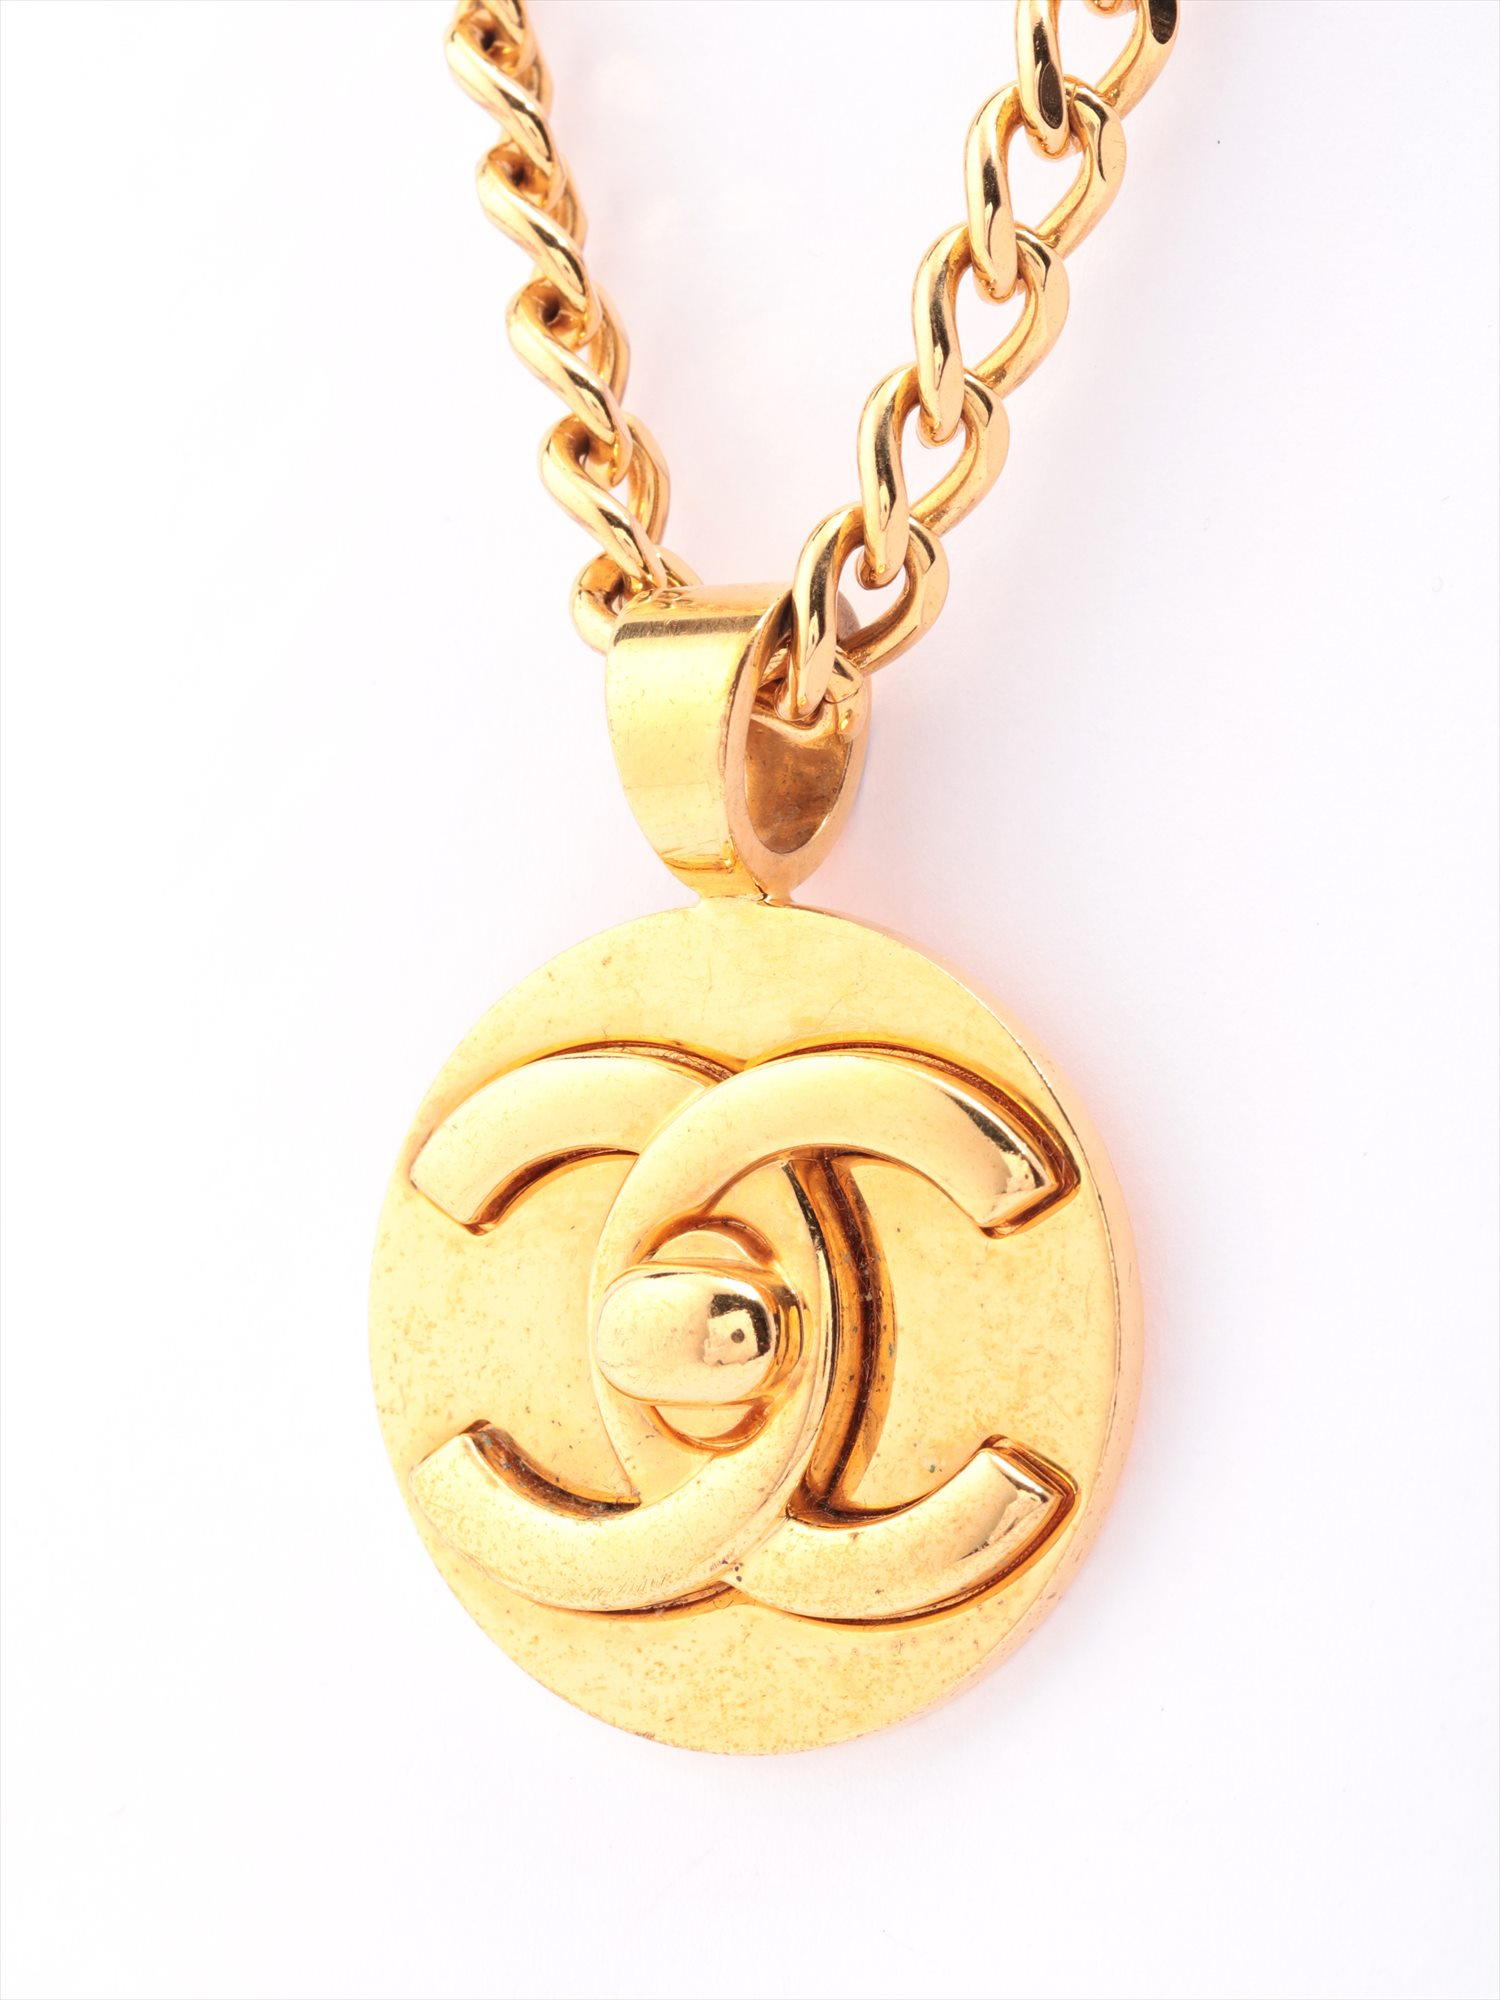 [Used goods] Chanel Coco mark necklace GP Gold turn-lock 97A